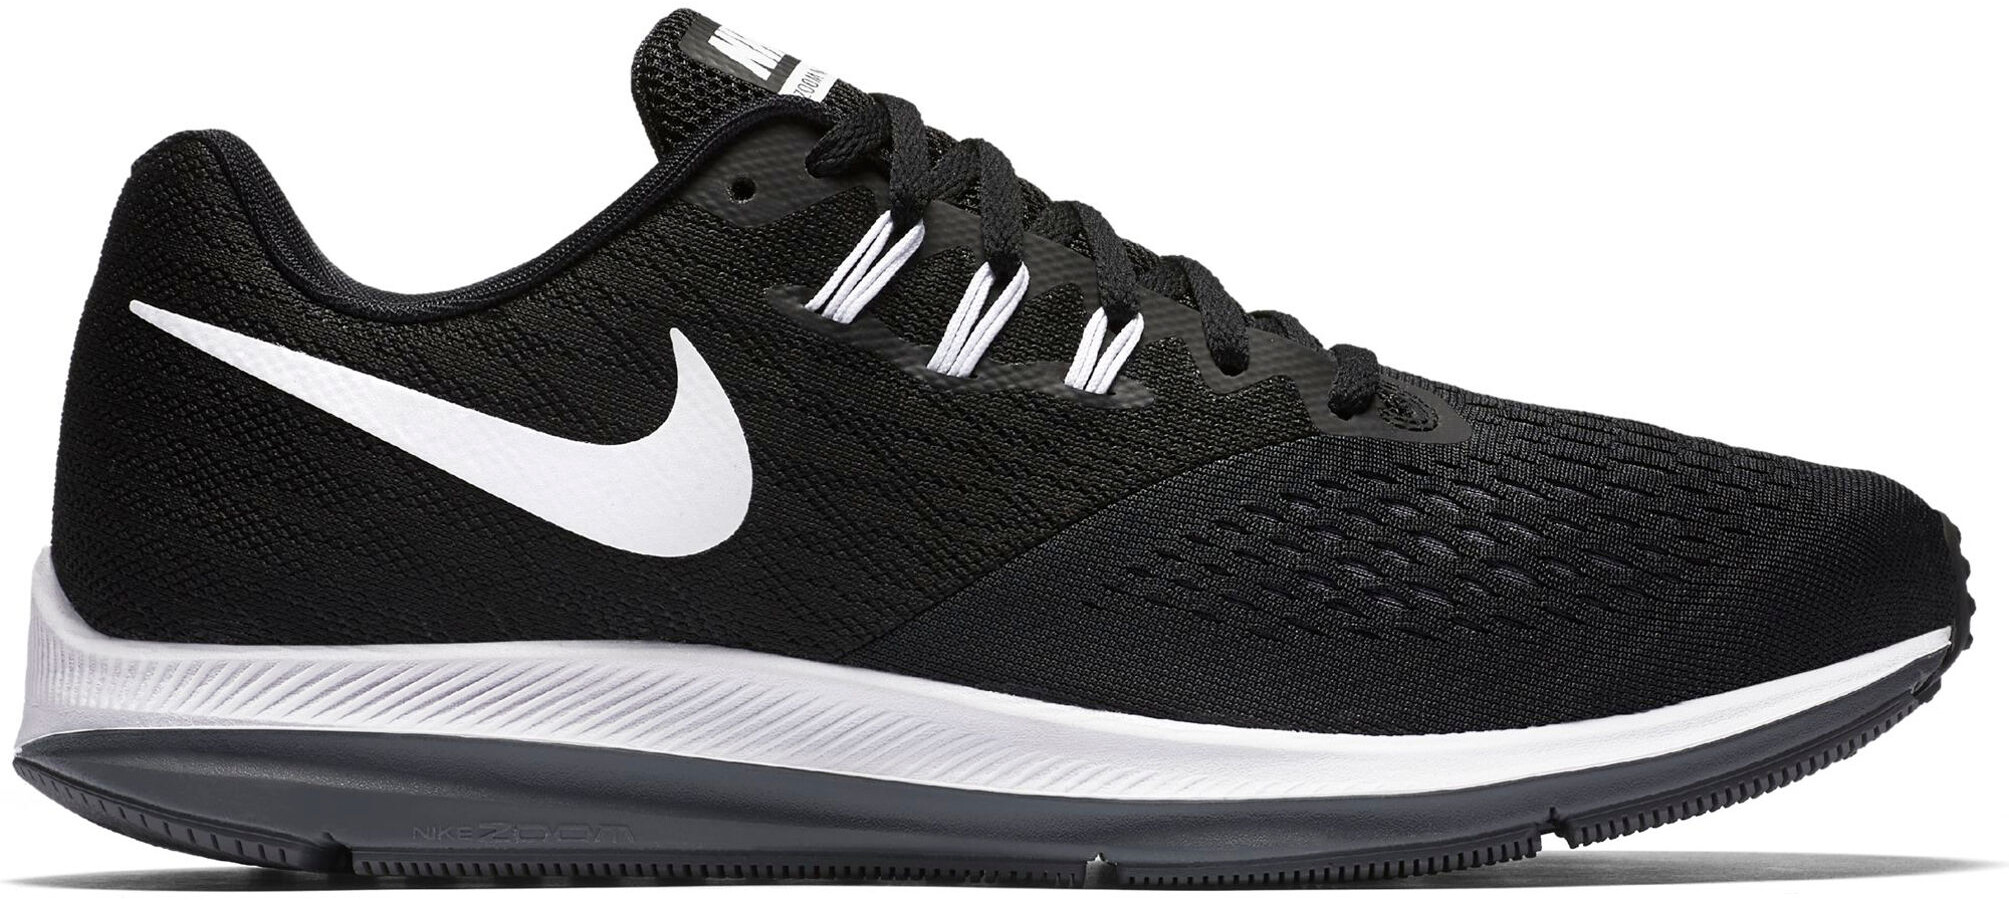 timeless design 74ad5 fb3b9 Nike Air Zoom Winflo 4 - Chaussures running Homme - noir